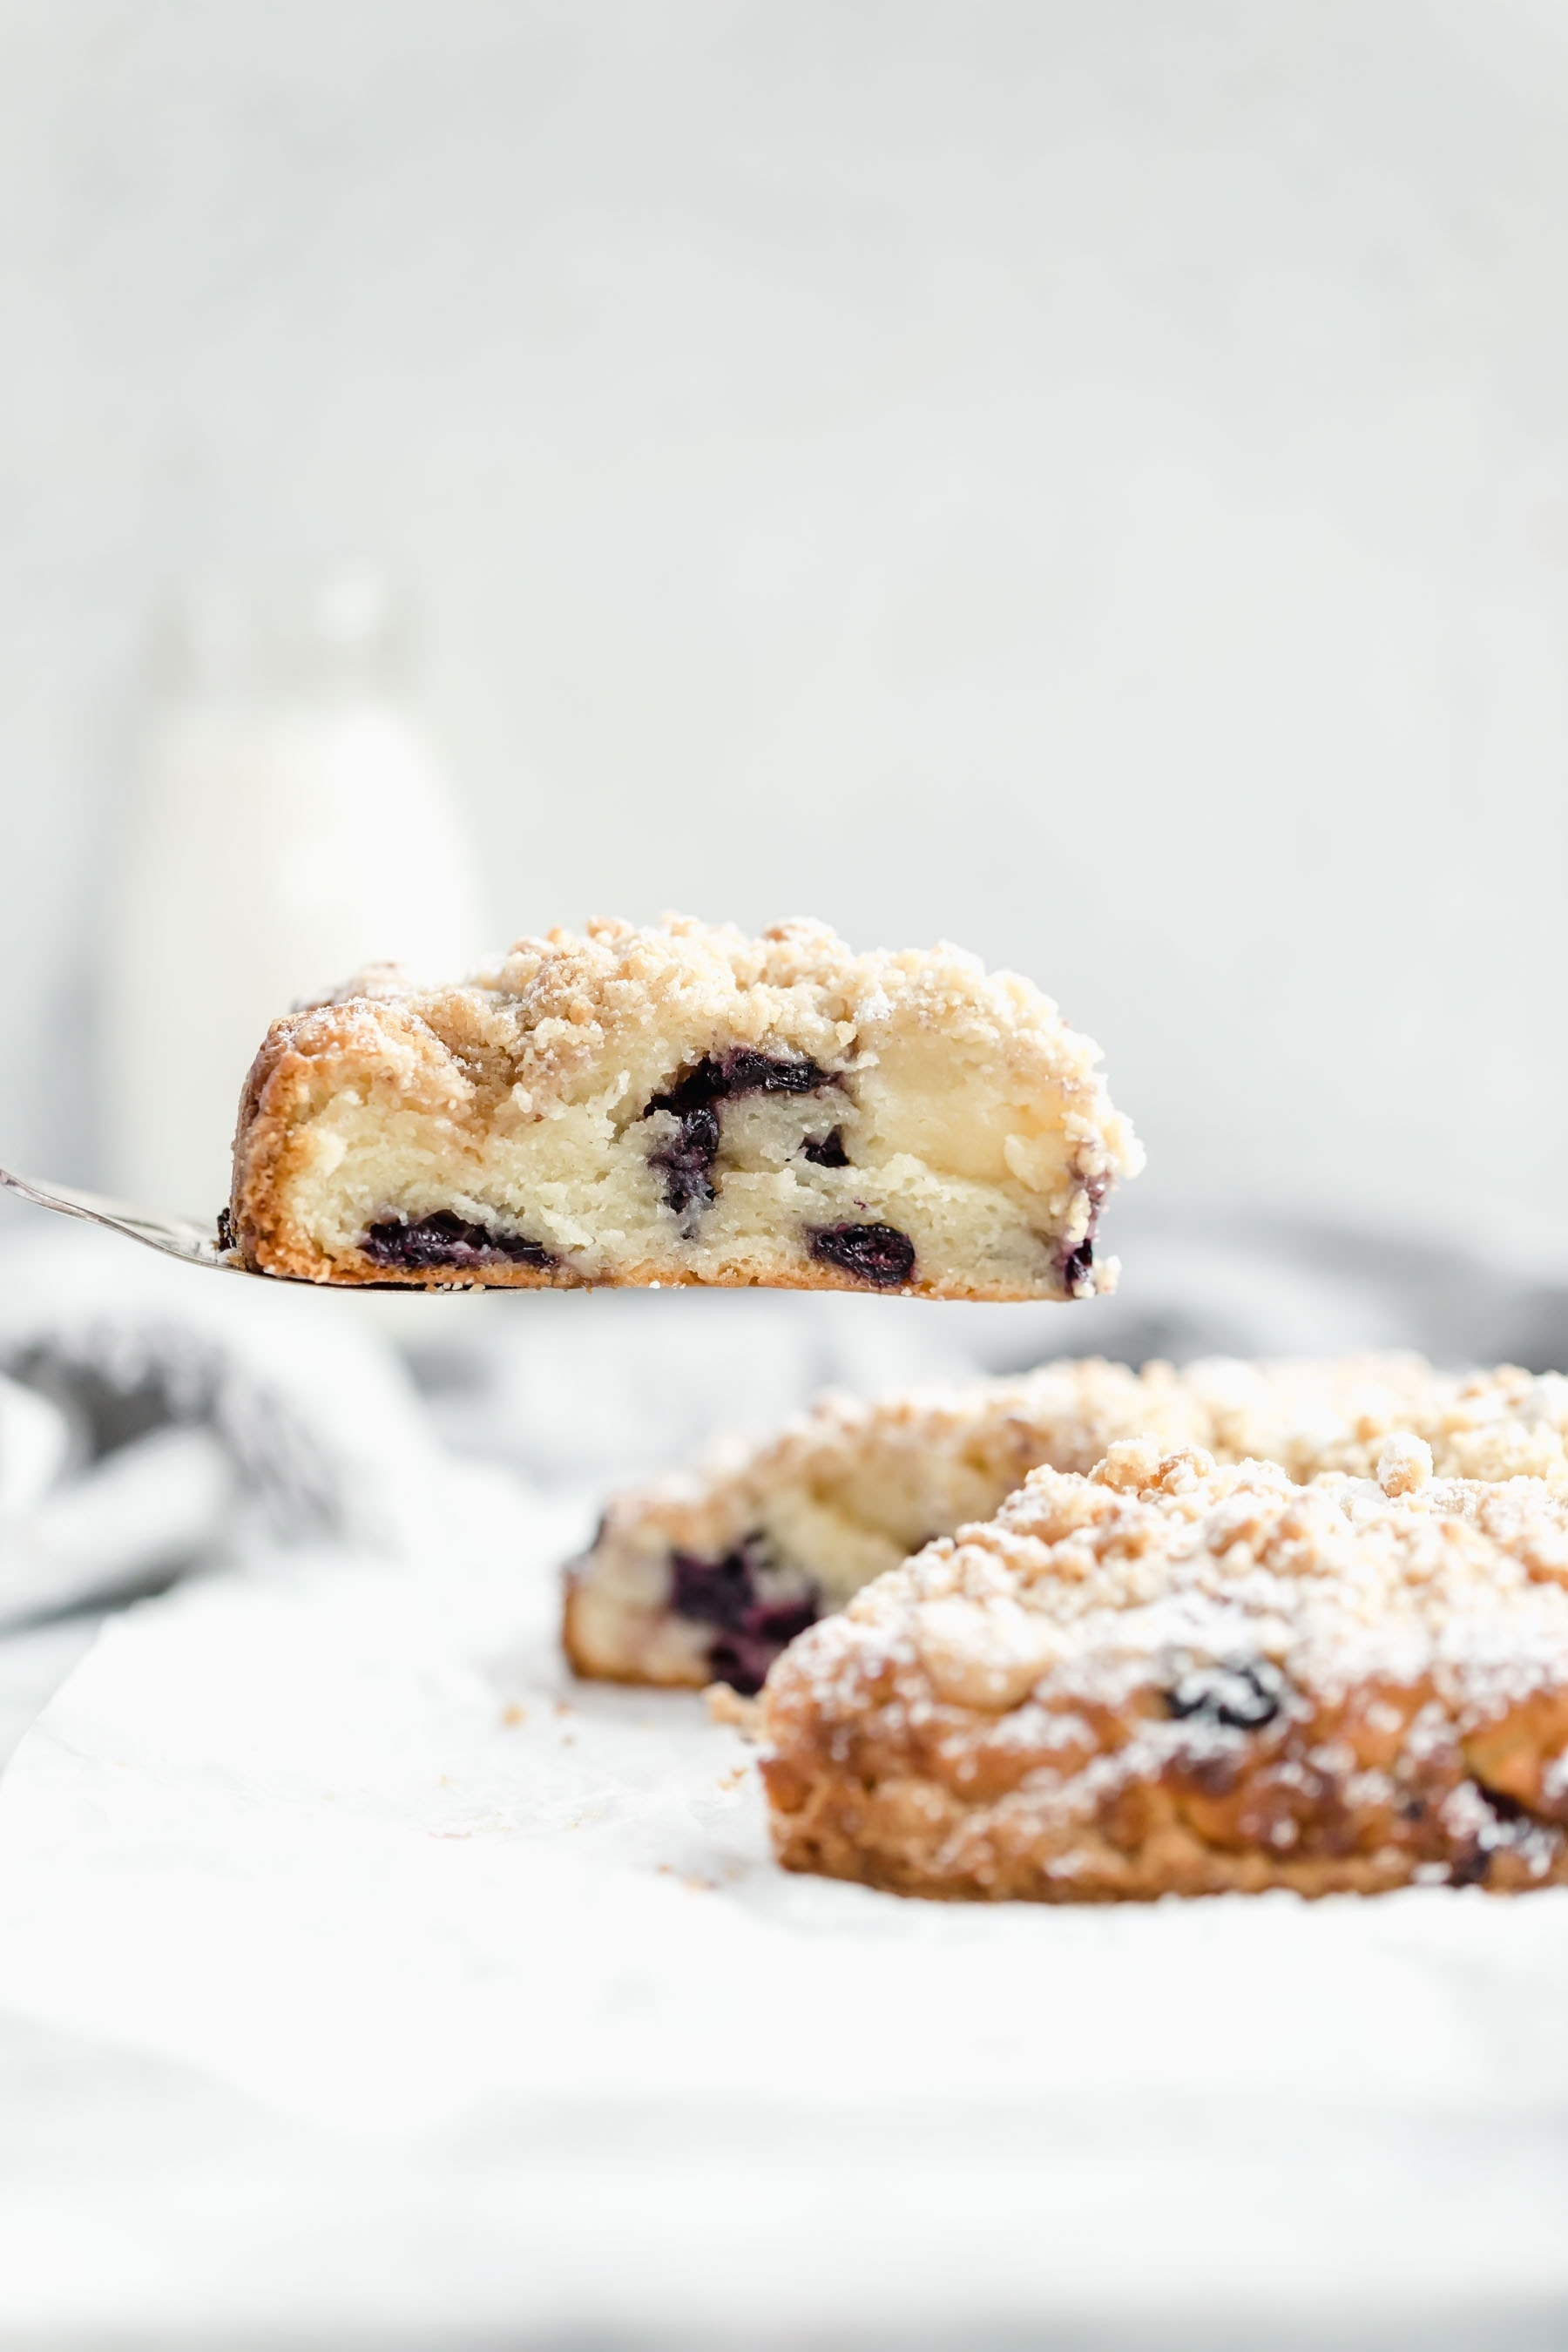 Blueberry scones with a decadent streusel topping. These blueberry streusel scones are perfect for mother's day!